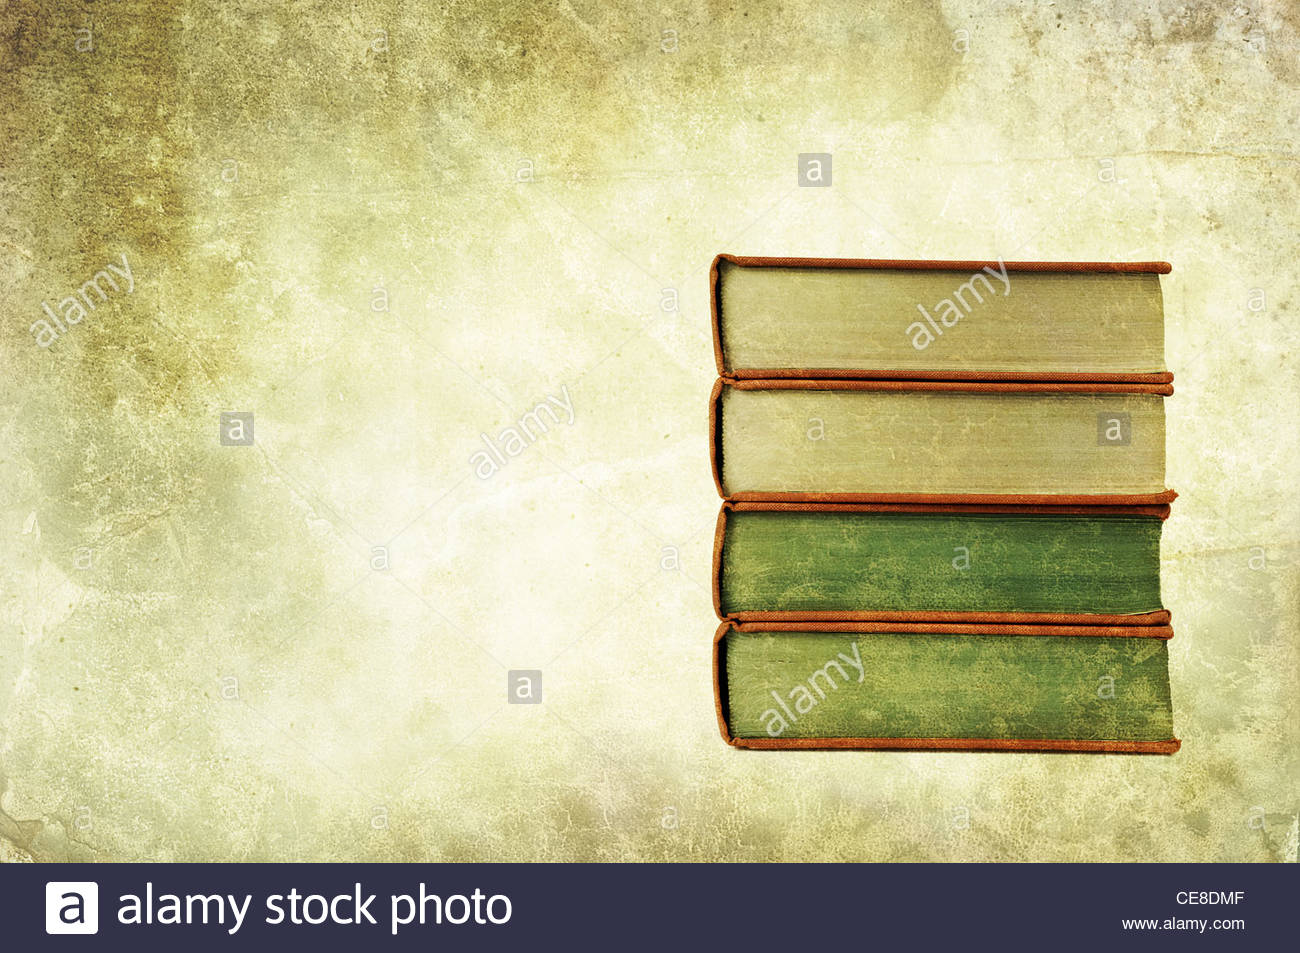 pile de livre ancien Photo Stock